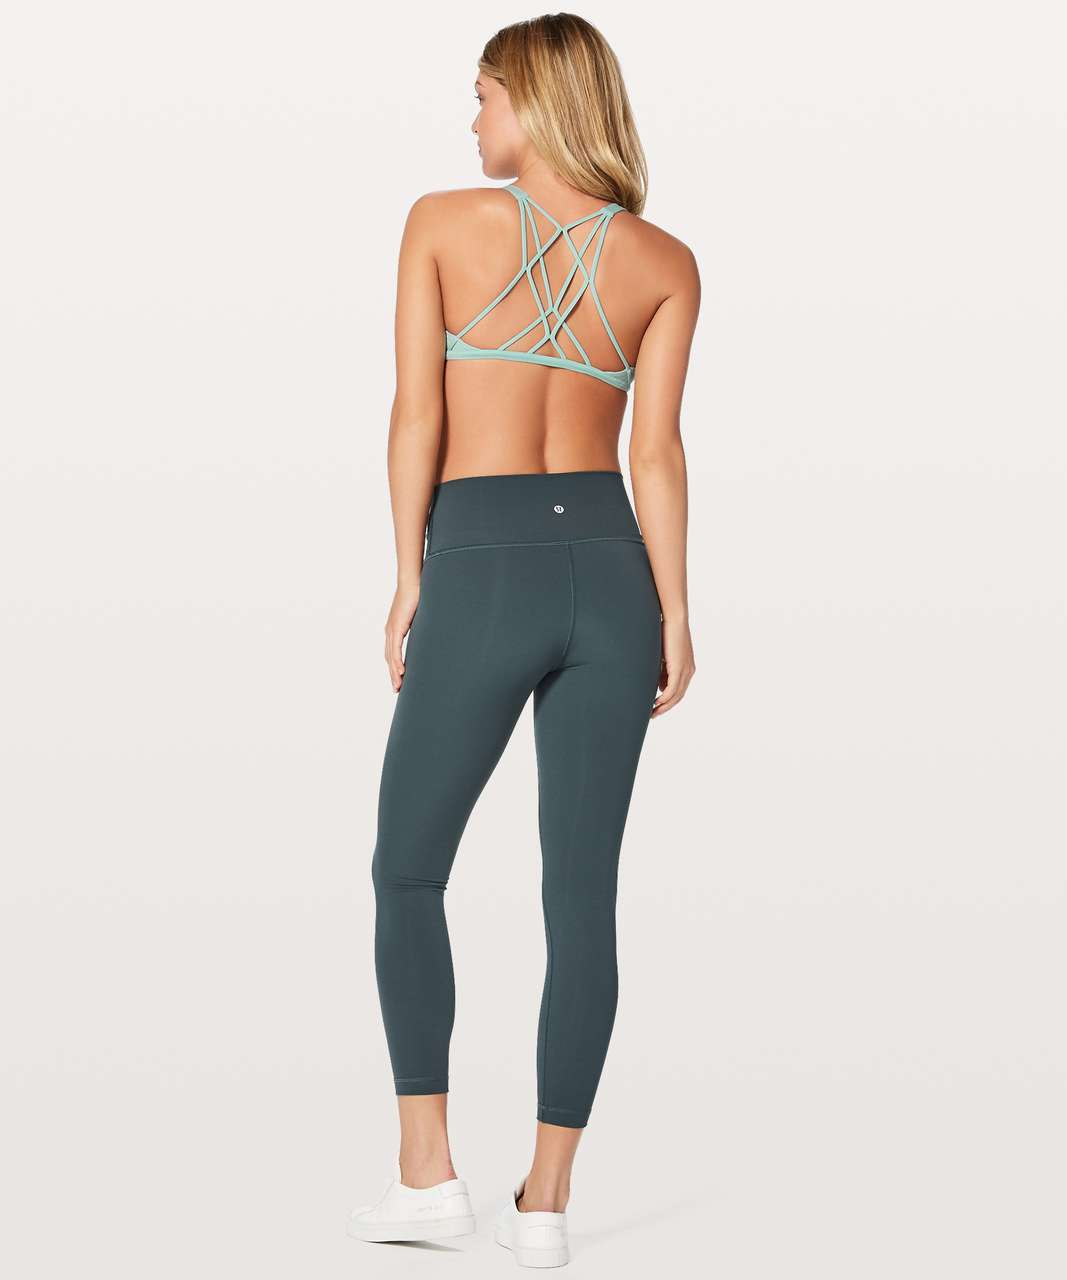 Lululemon Free To Be Zen Bra - Tonic Sea